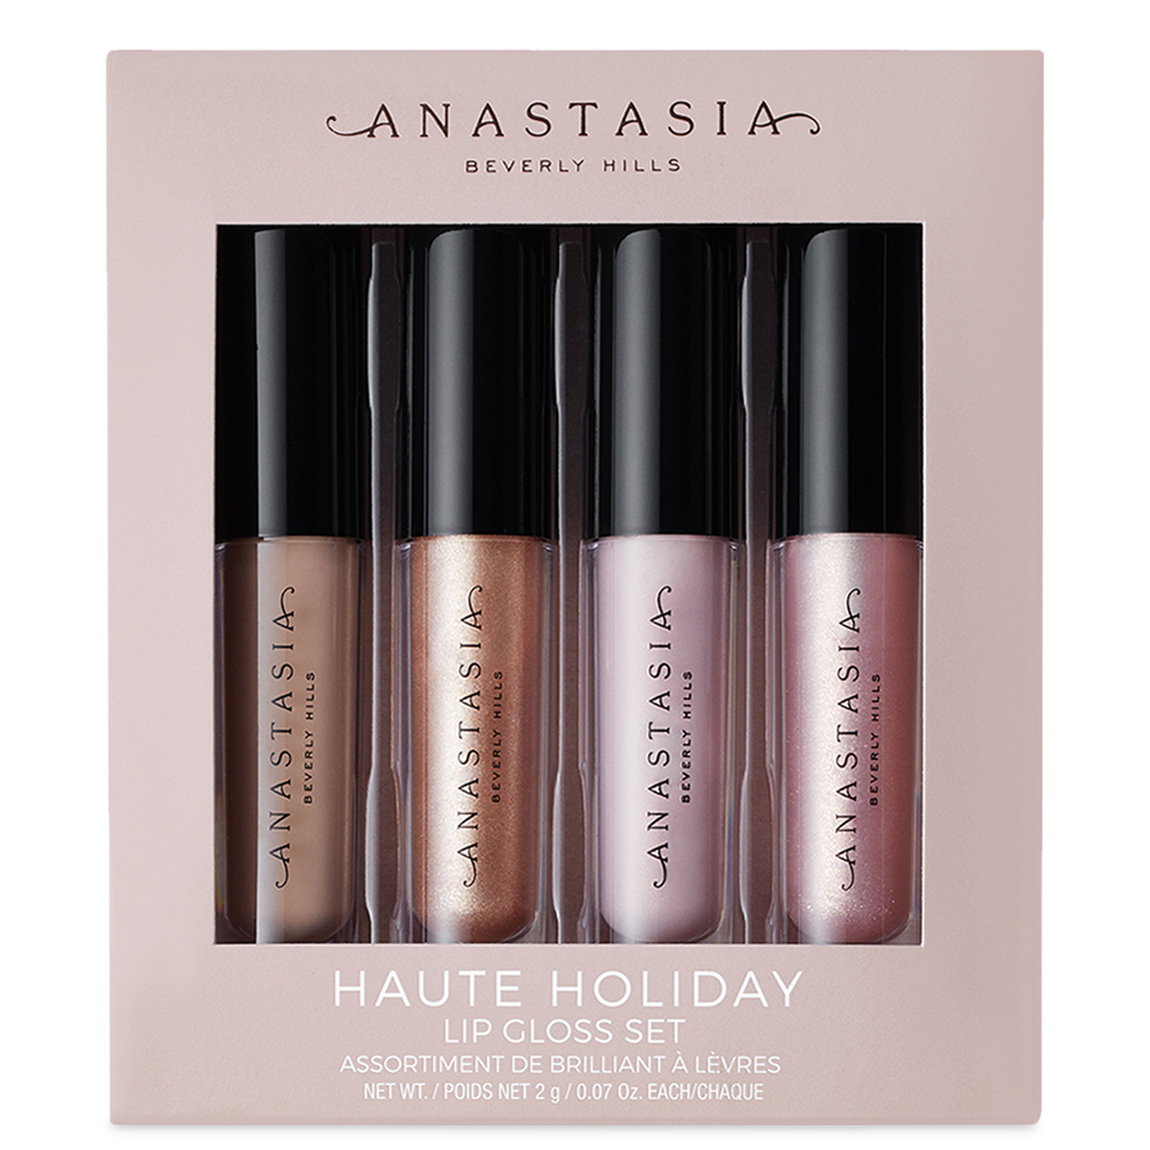 Anastasia Beverly Hills Haute Holiday Lip Gloss Set alternative view 1 - product swatch.